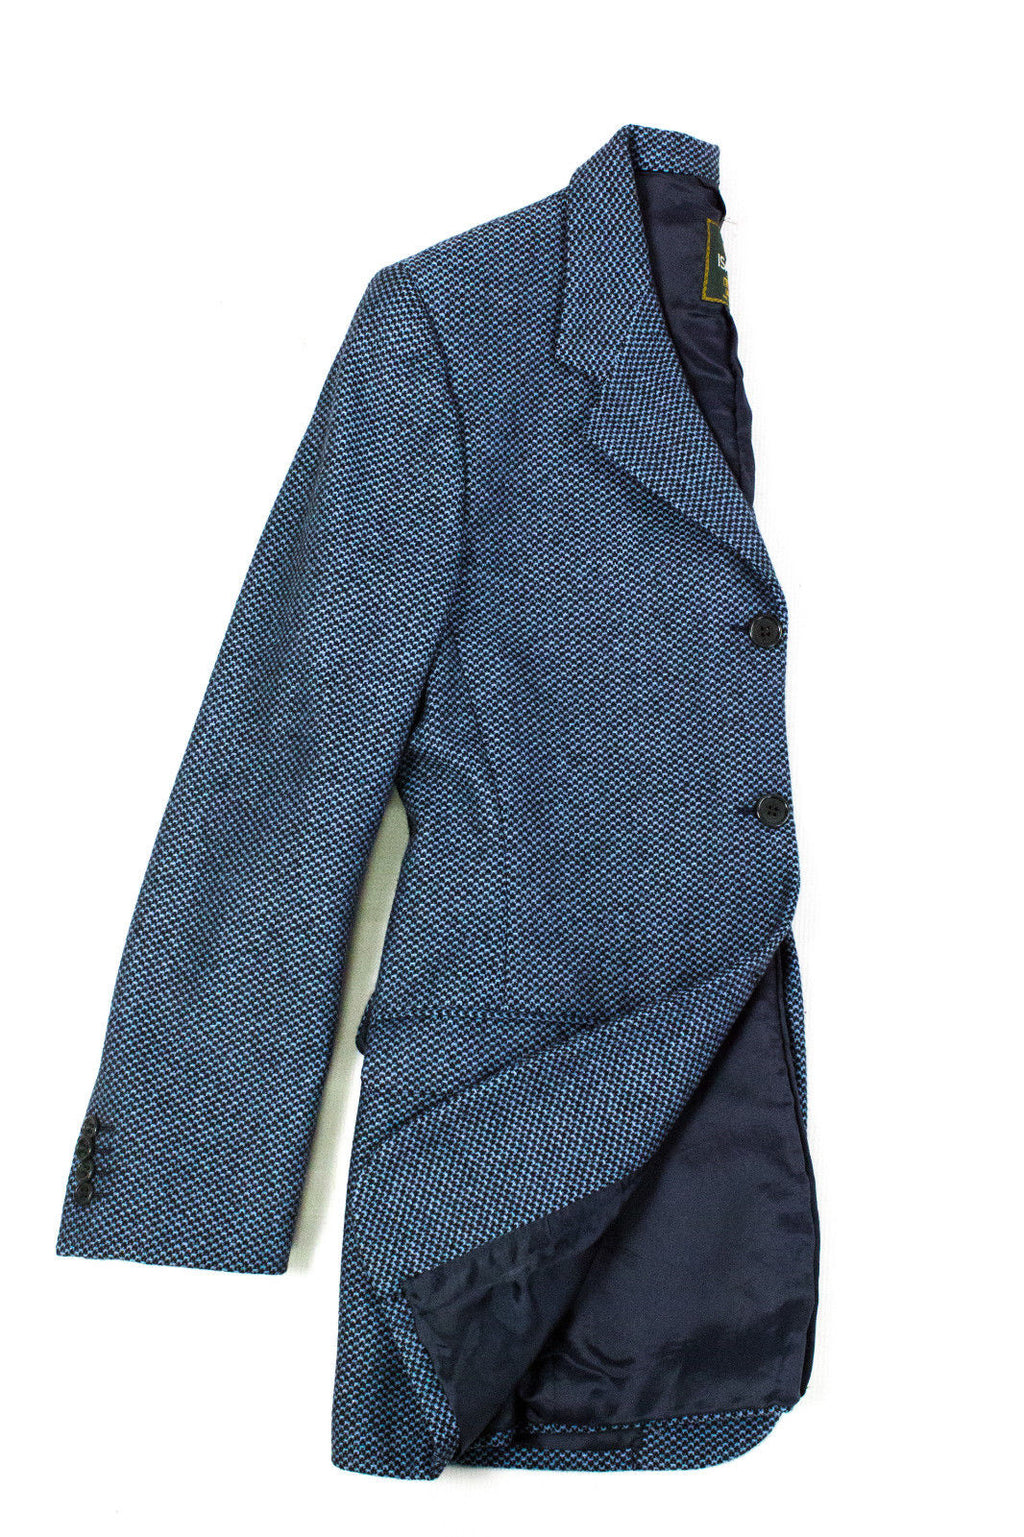 ISAIA 100% Cashmere Tailored Smart Blazer Jacket, SIZE USA 10 - secondfirst